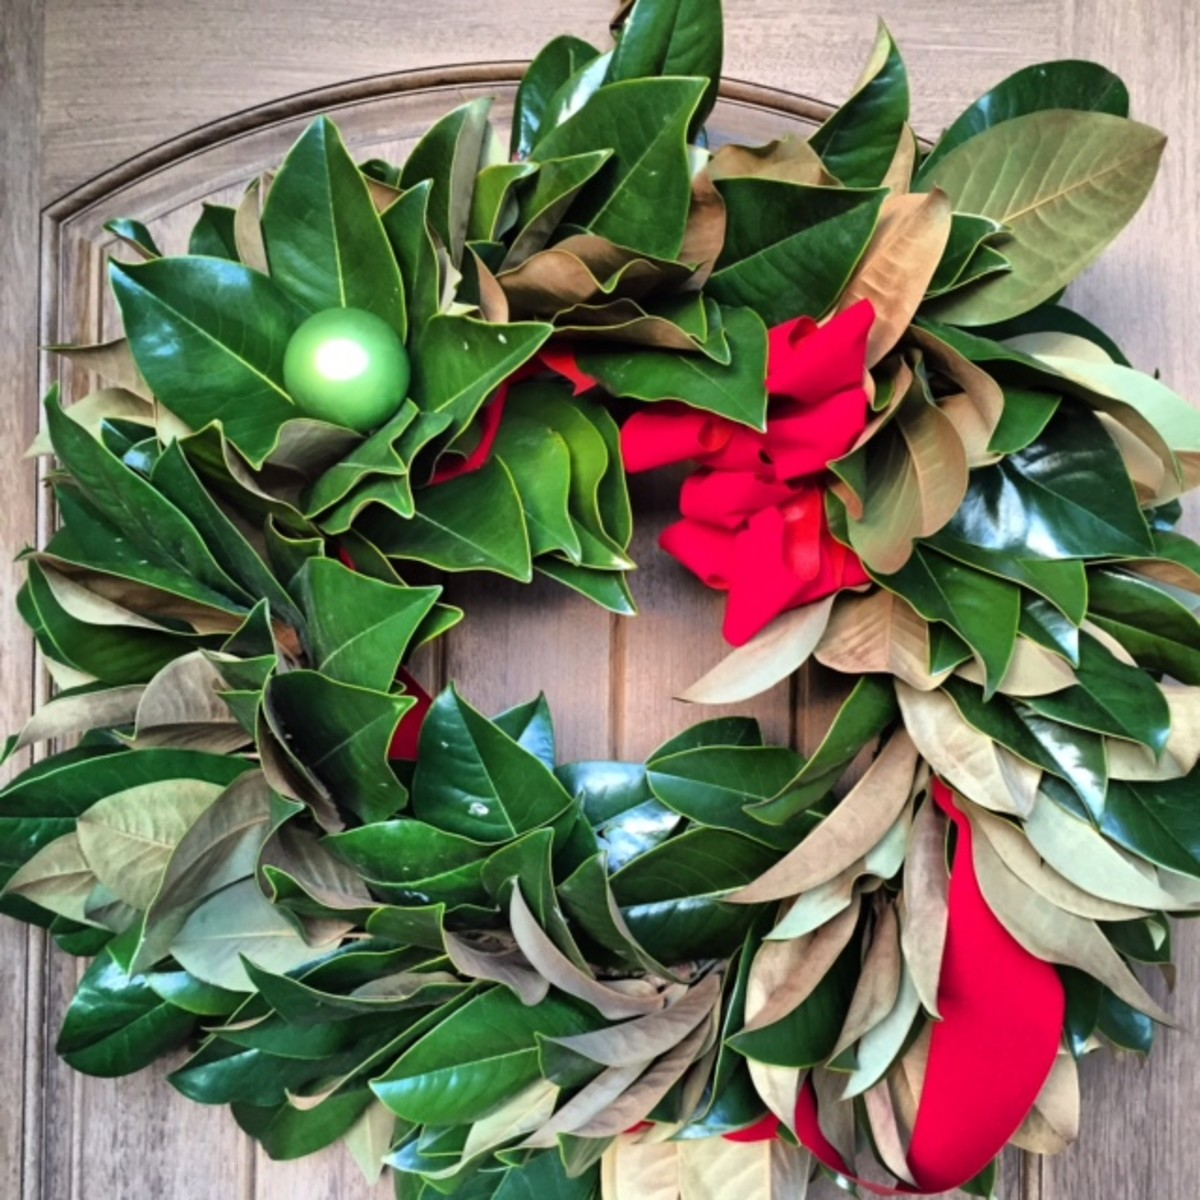 How to Make a Magnolia Christmas Wreath